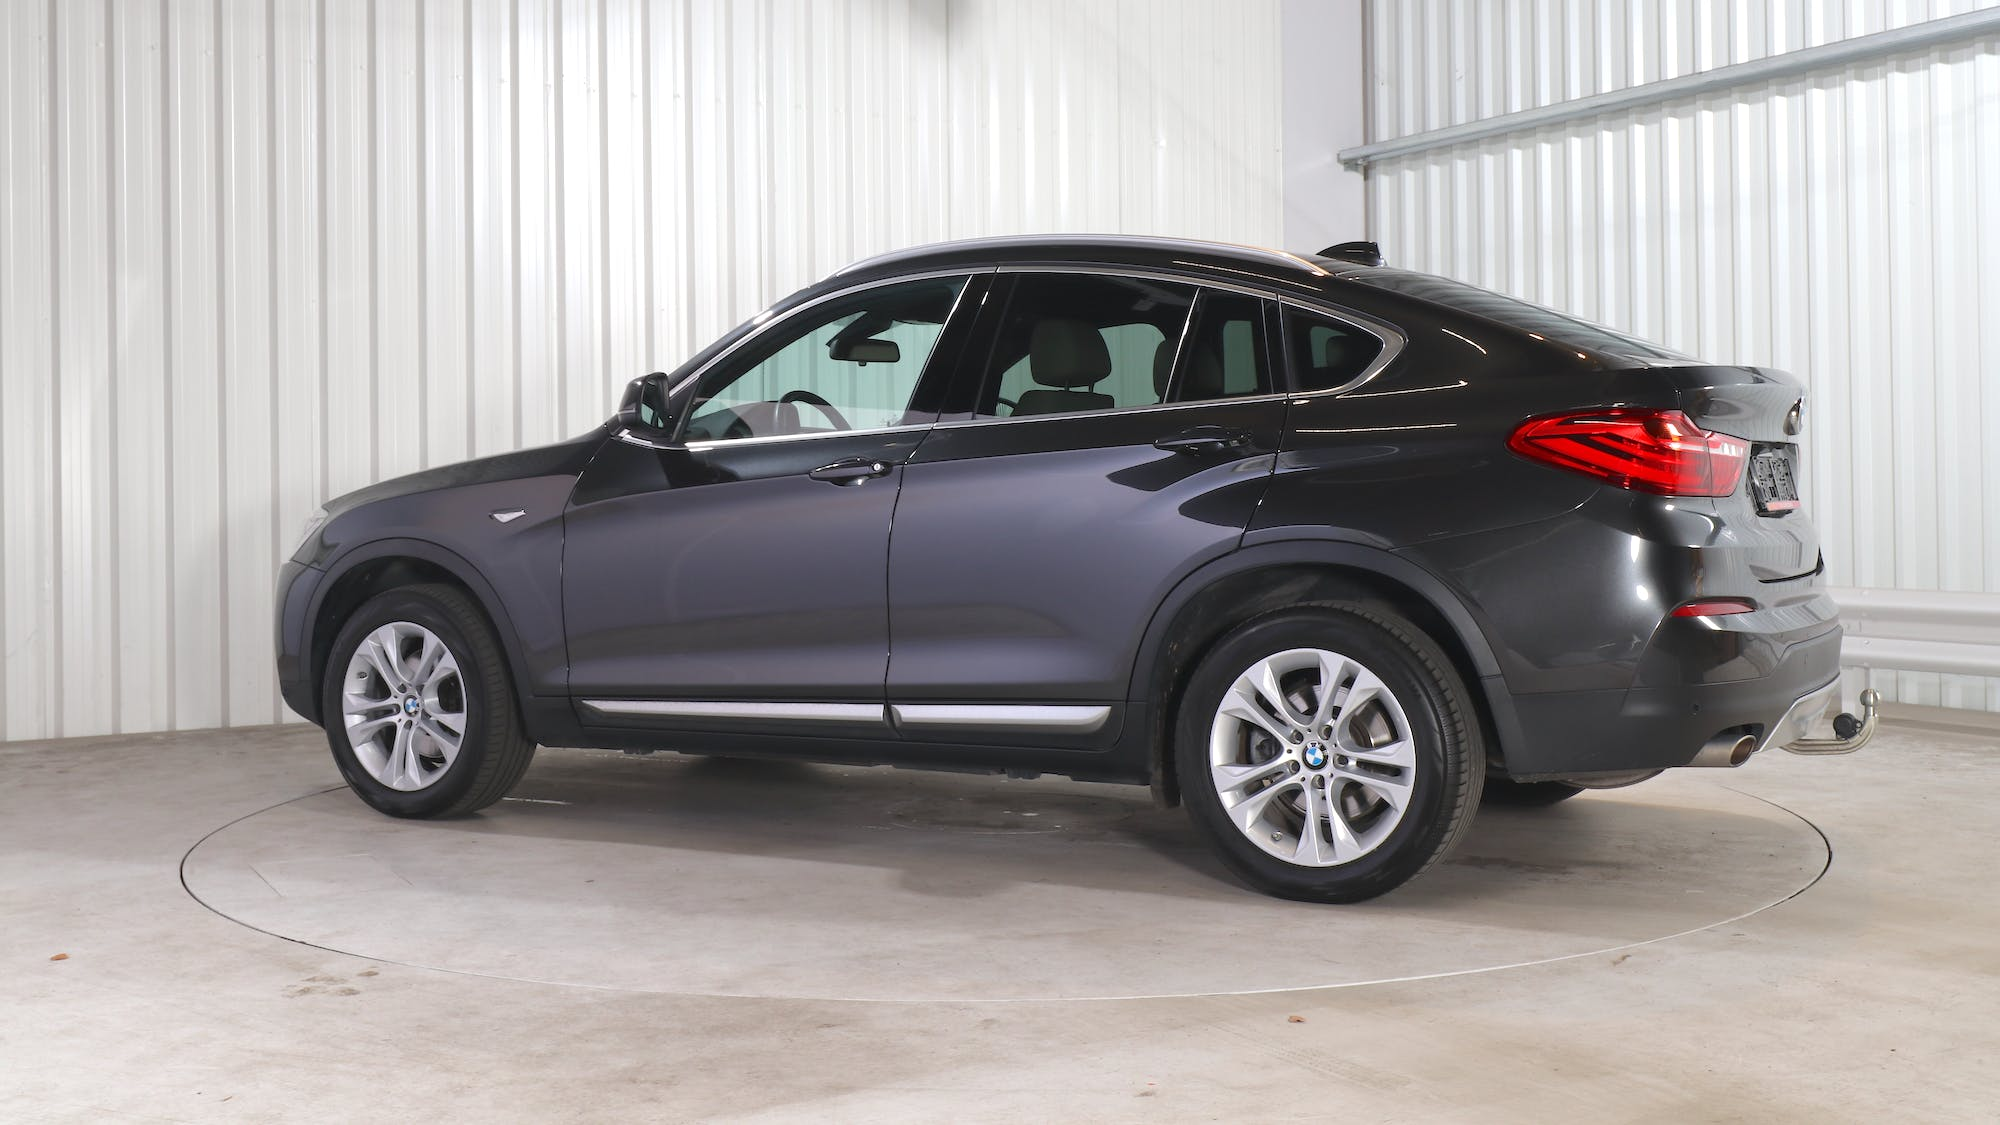 BMW X4 leasing exterior 3